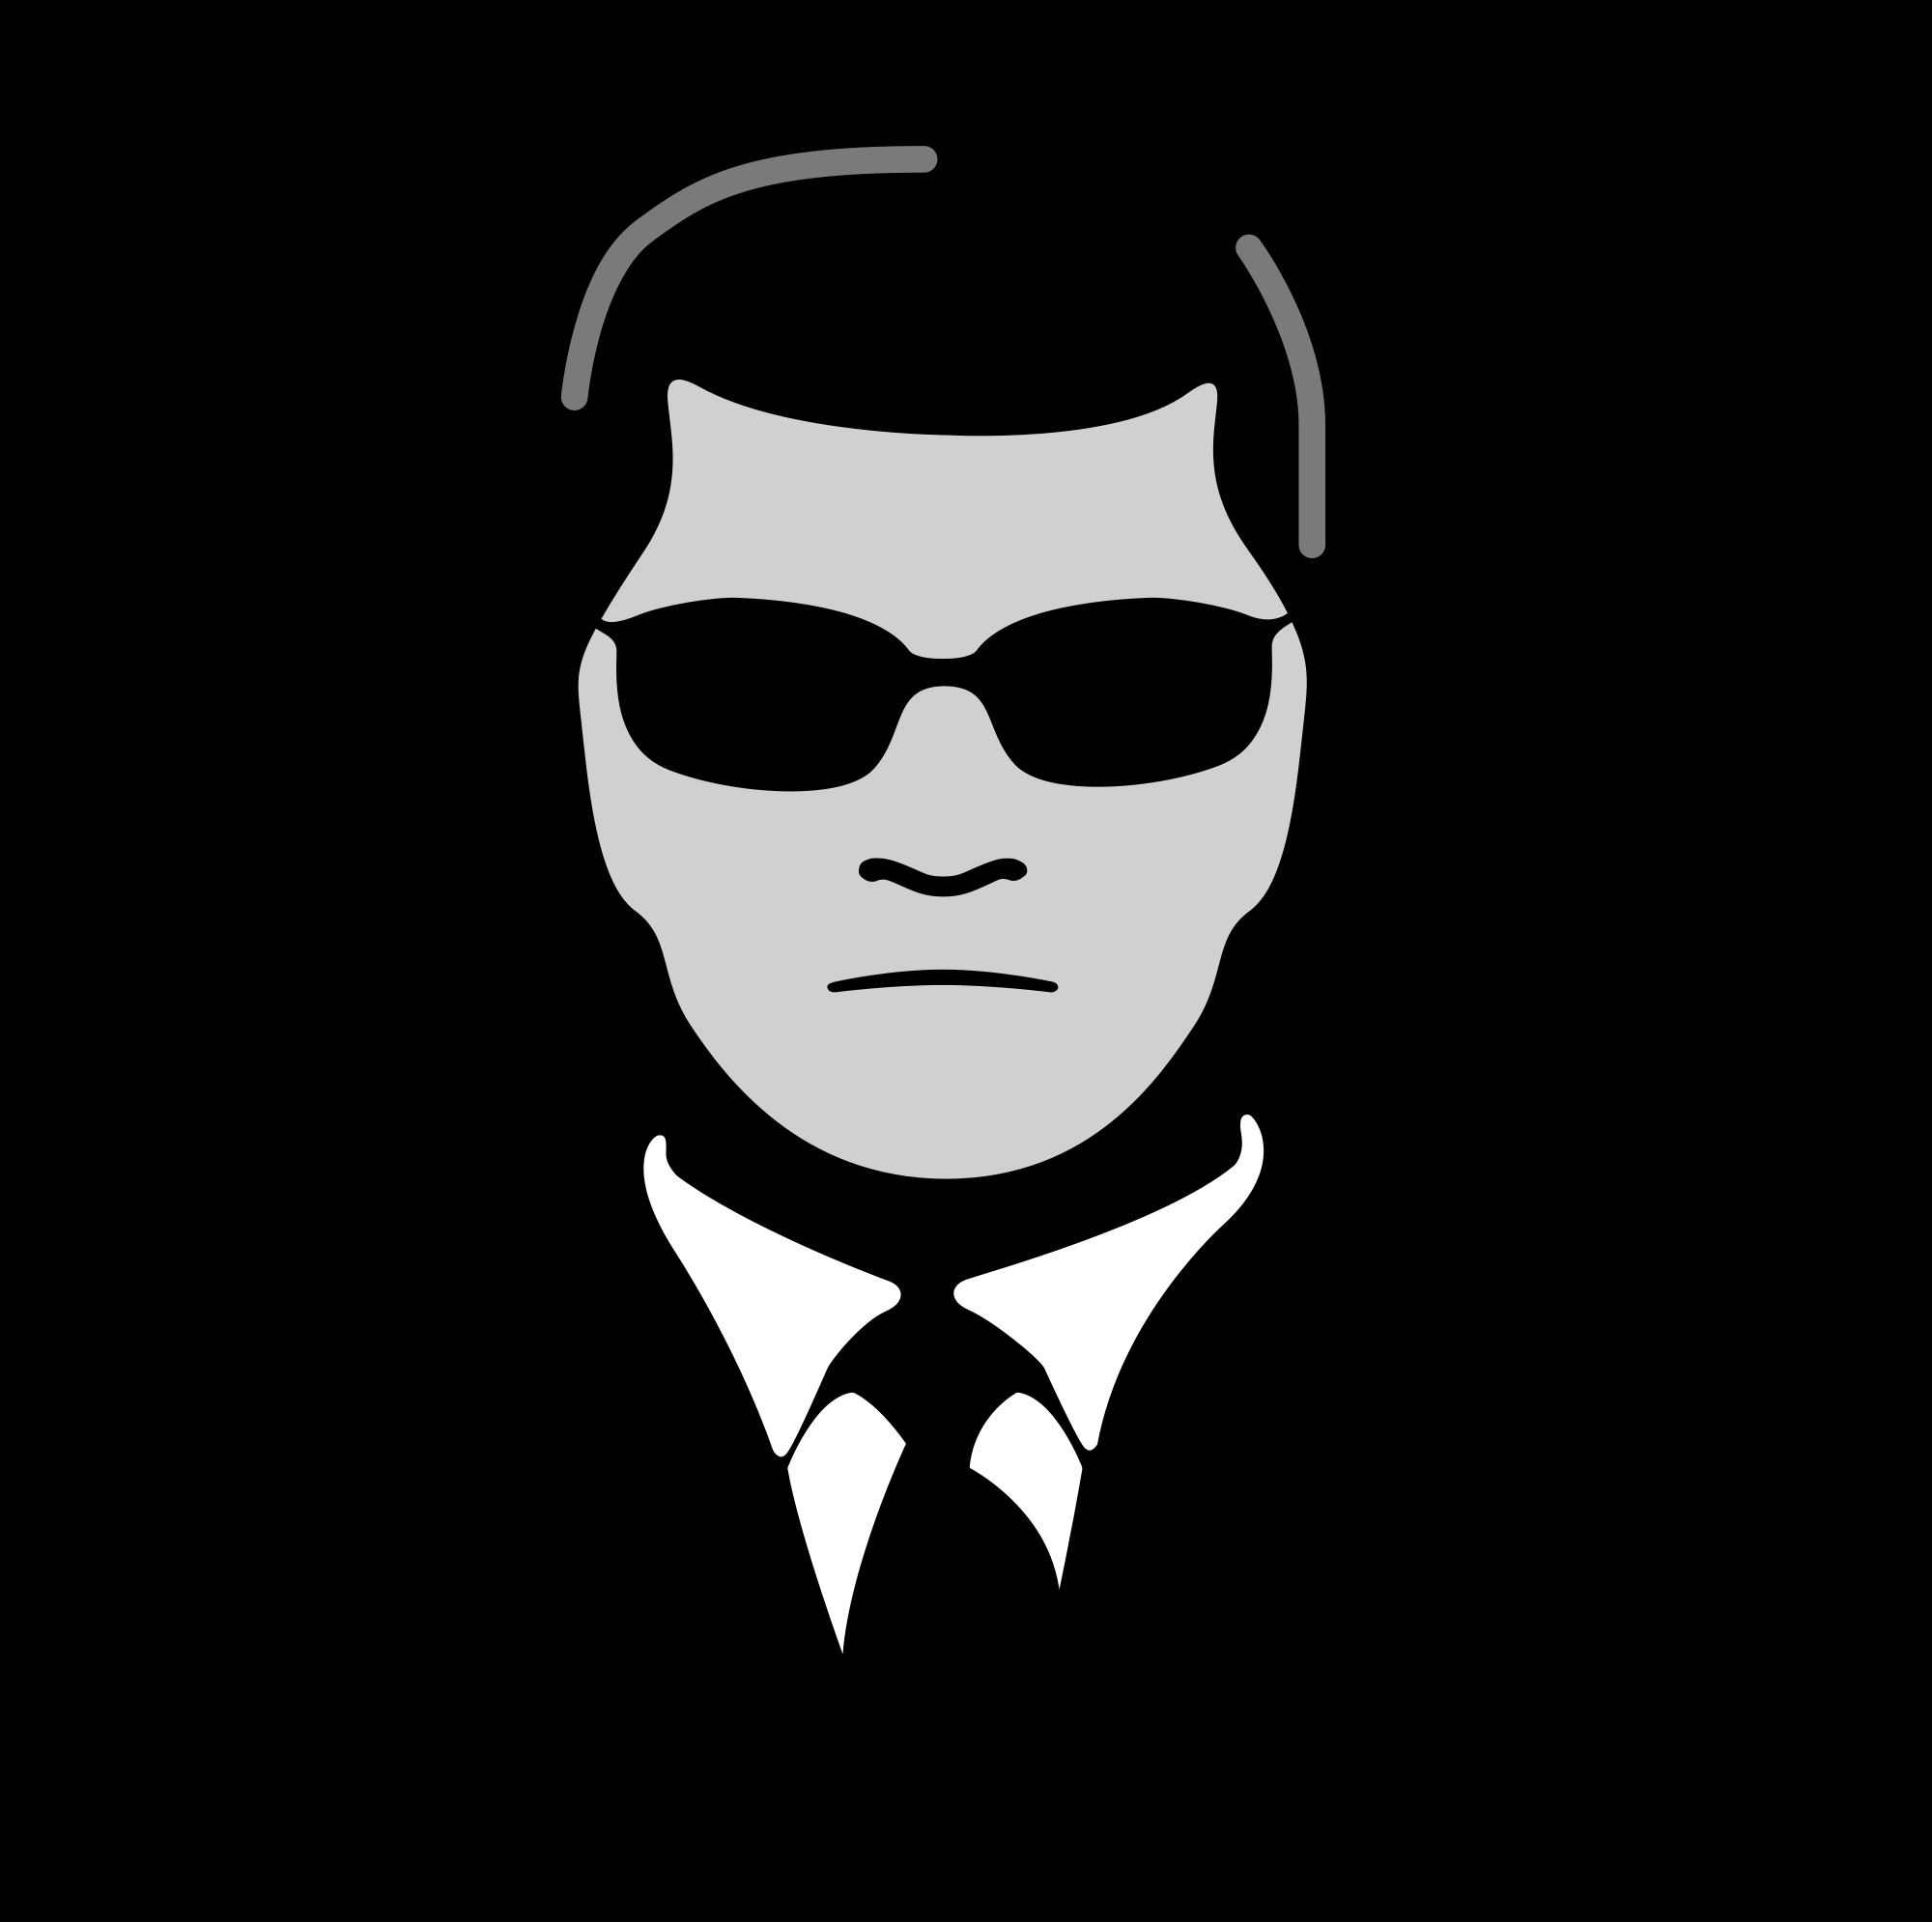 File:MiB.svg - Wikimedia Commons